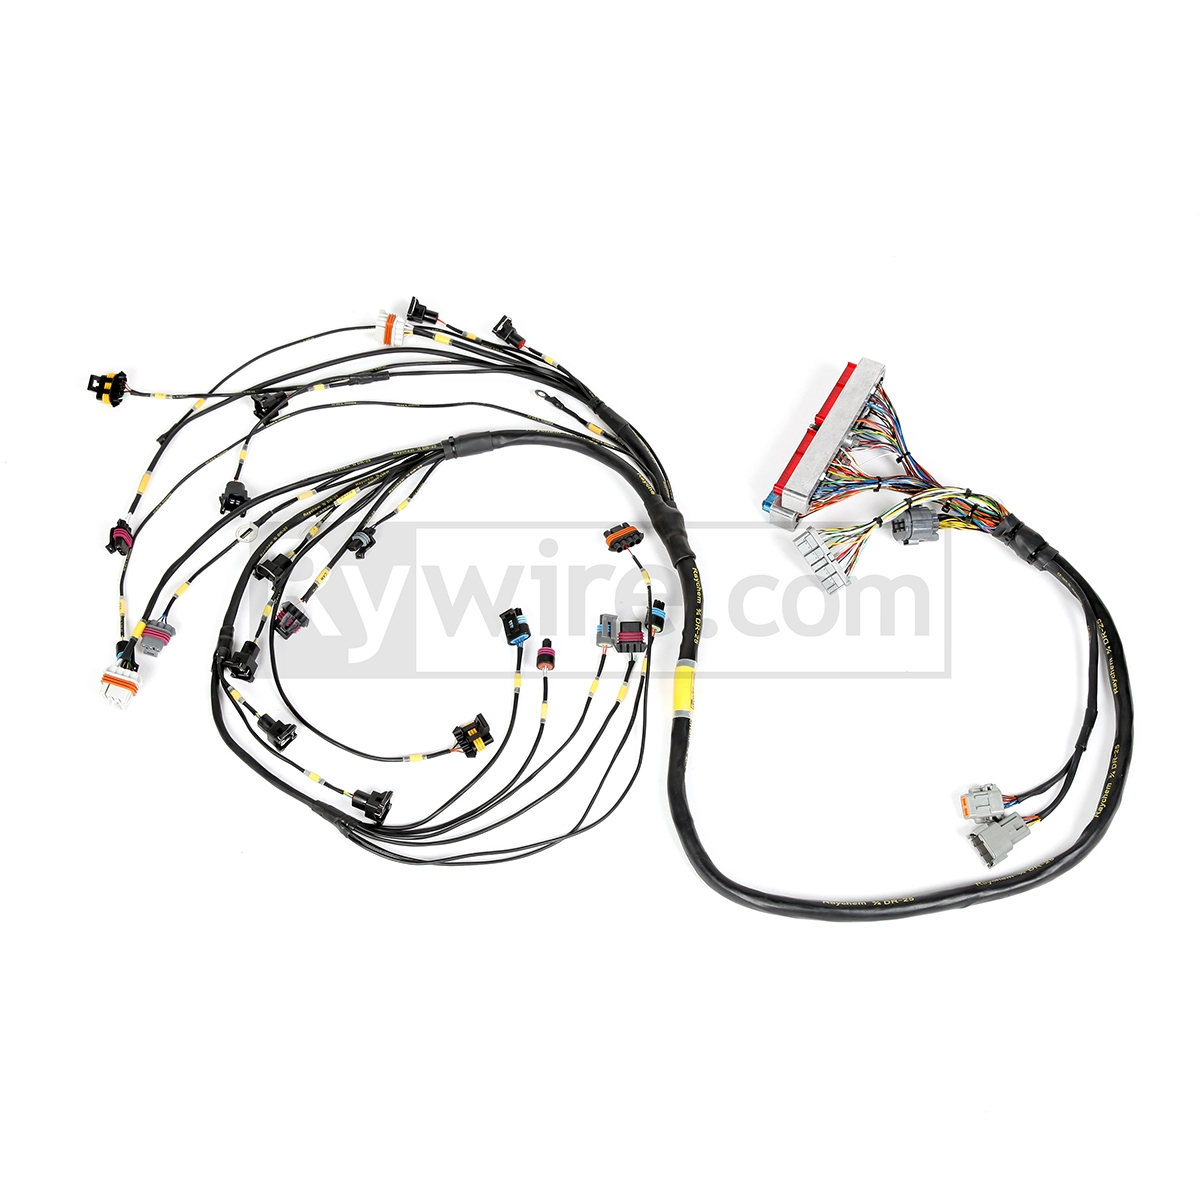 ls1 milspec 2?1403109648 rywire com ls1 mil spec tuck engine harness e46 ls1 wiring harness at bakdesigns.co